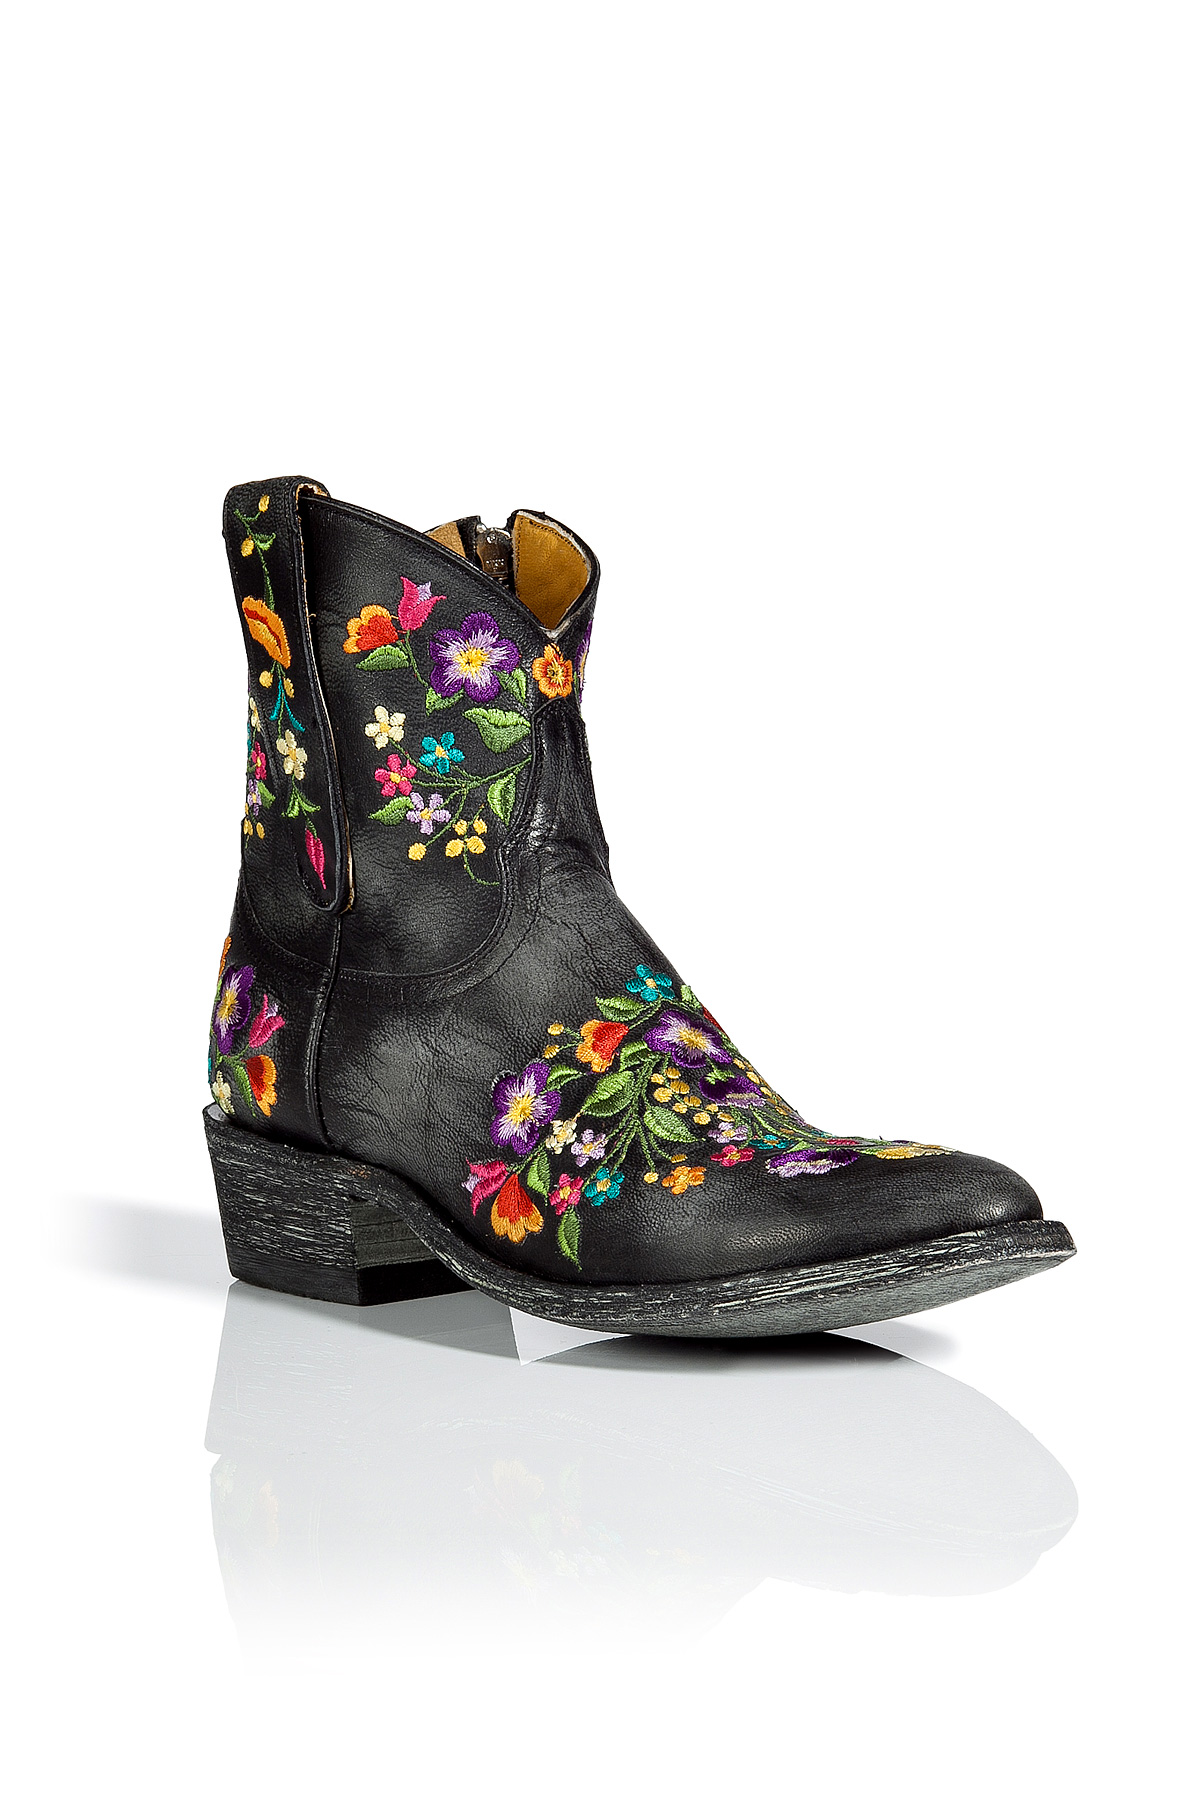 Lyst - Mexicana Black Flower Embroidered Ankle Boots in Black